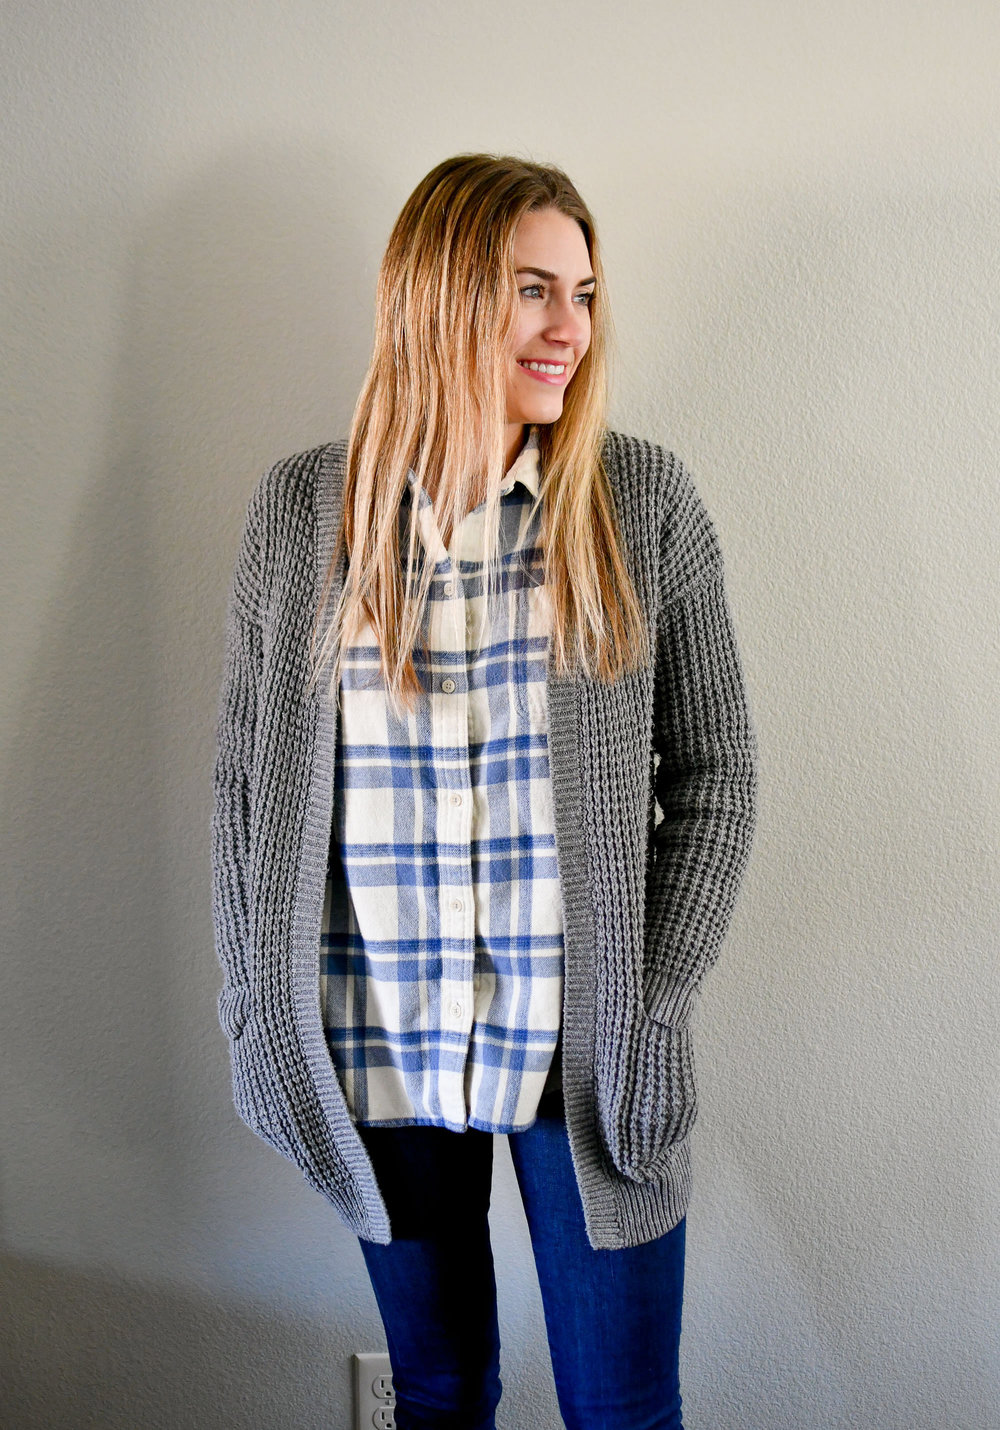 Grey cardigan winter outfit with flannel shirt — Cotton Cashmere Cat Hair